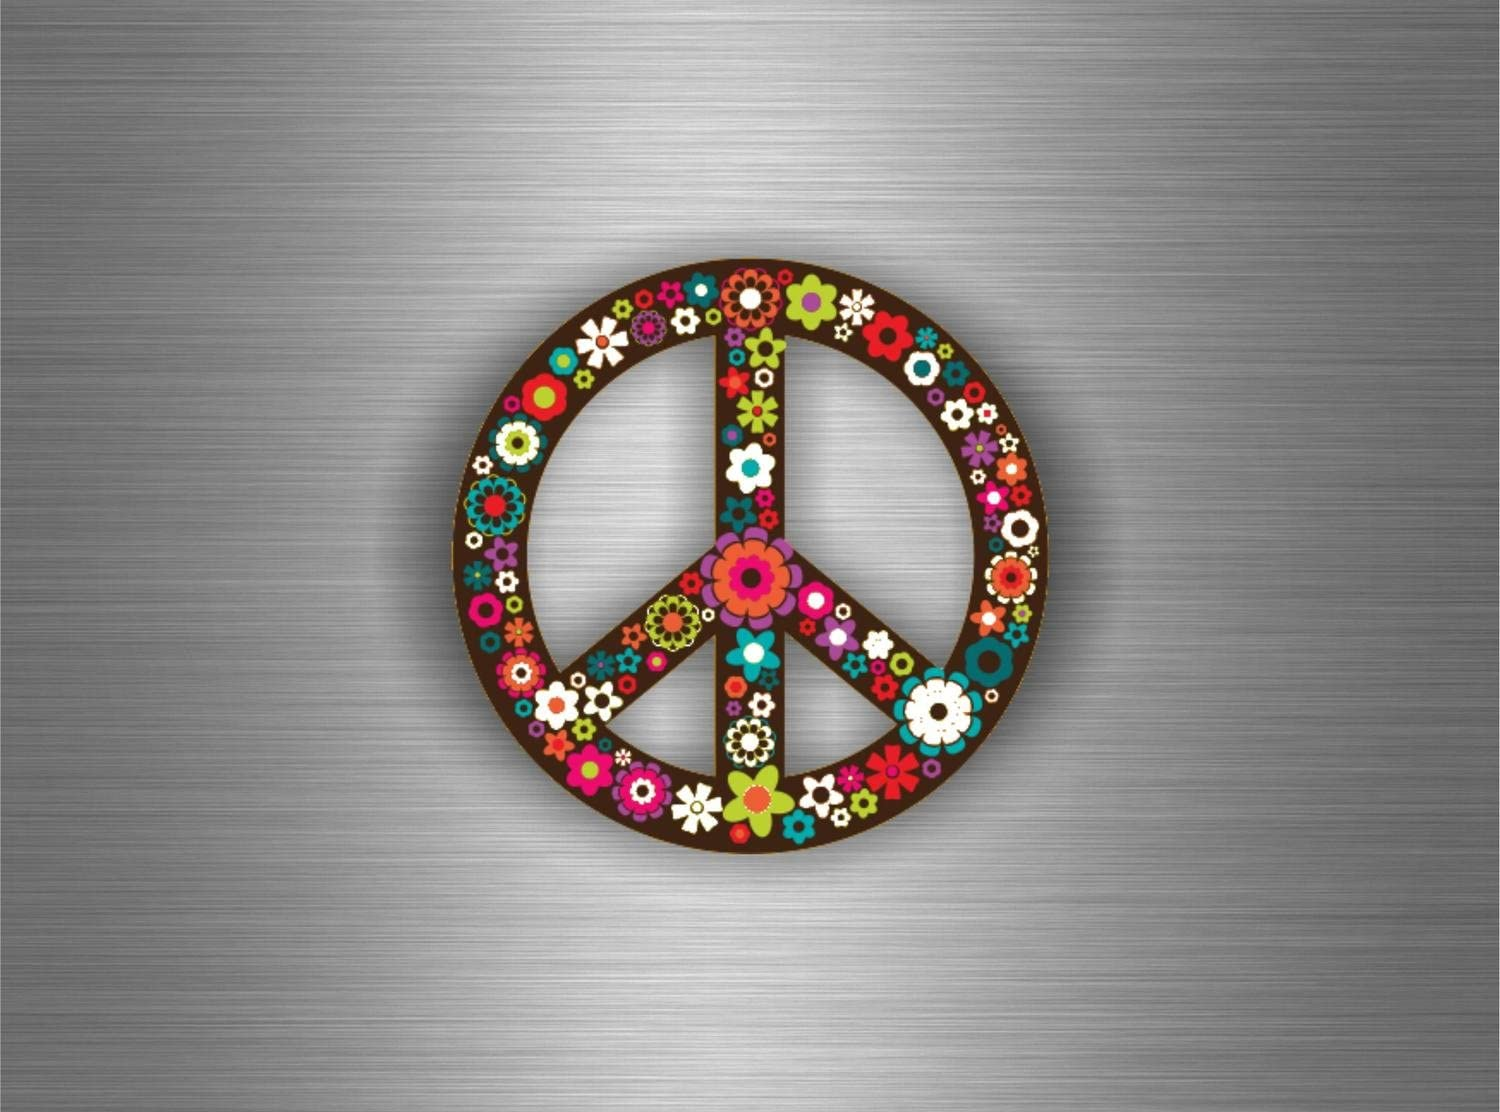 Autocollant sticker voiture moto tuning peace and love drapeau fleur